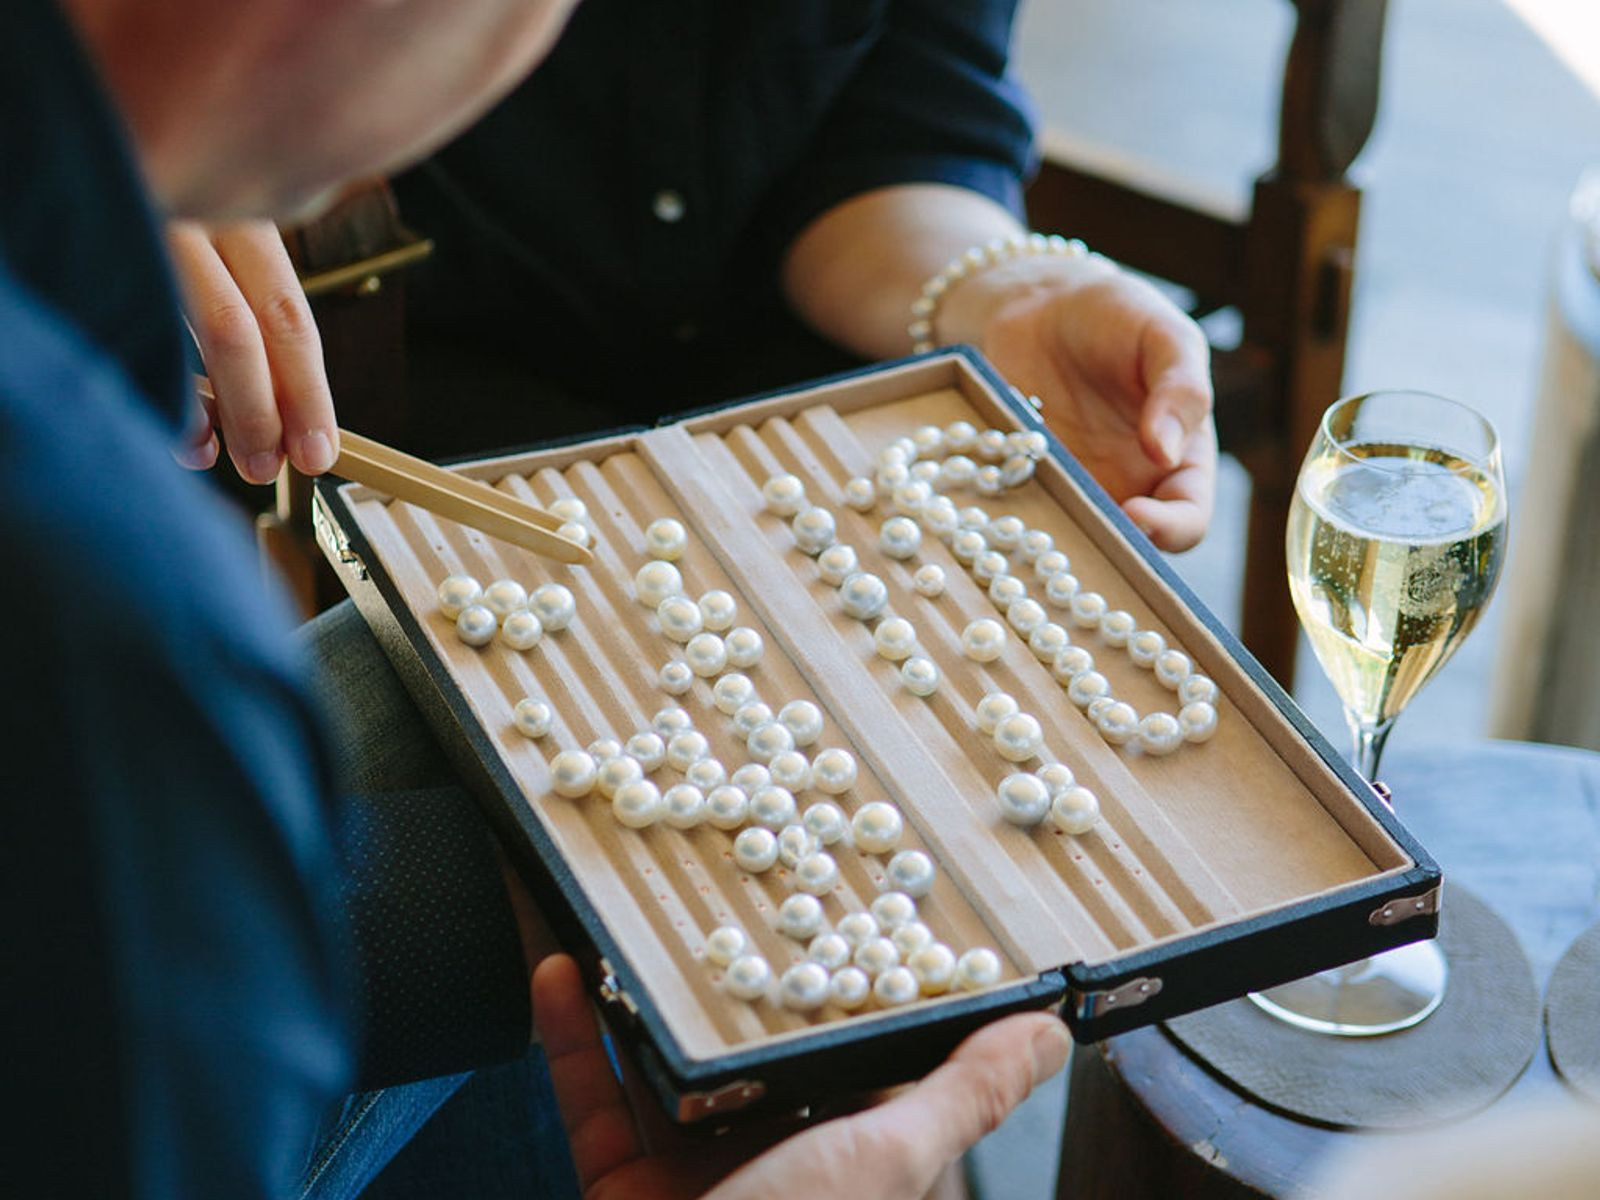 Pearl farming results in unbleached pearls in tray